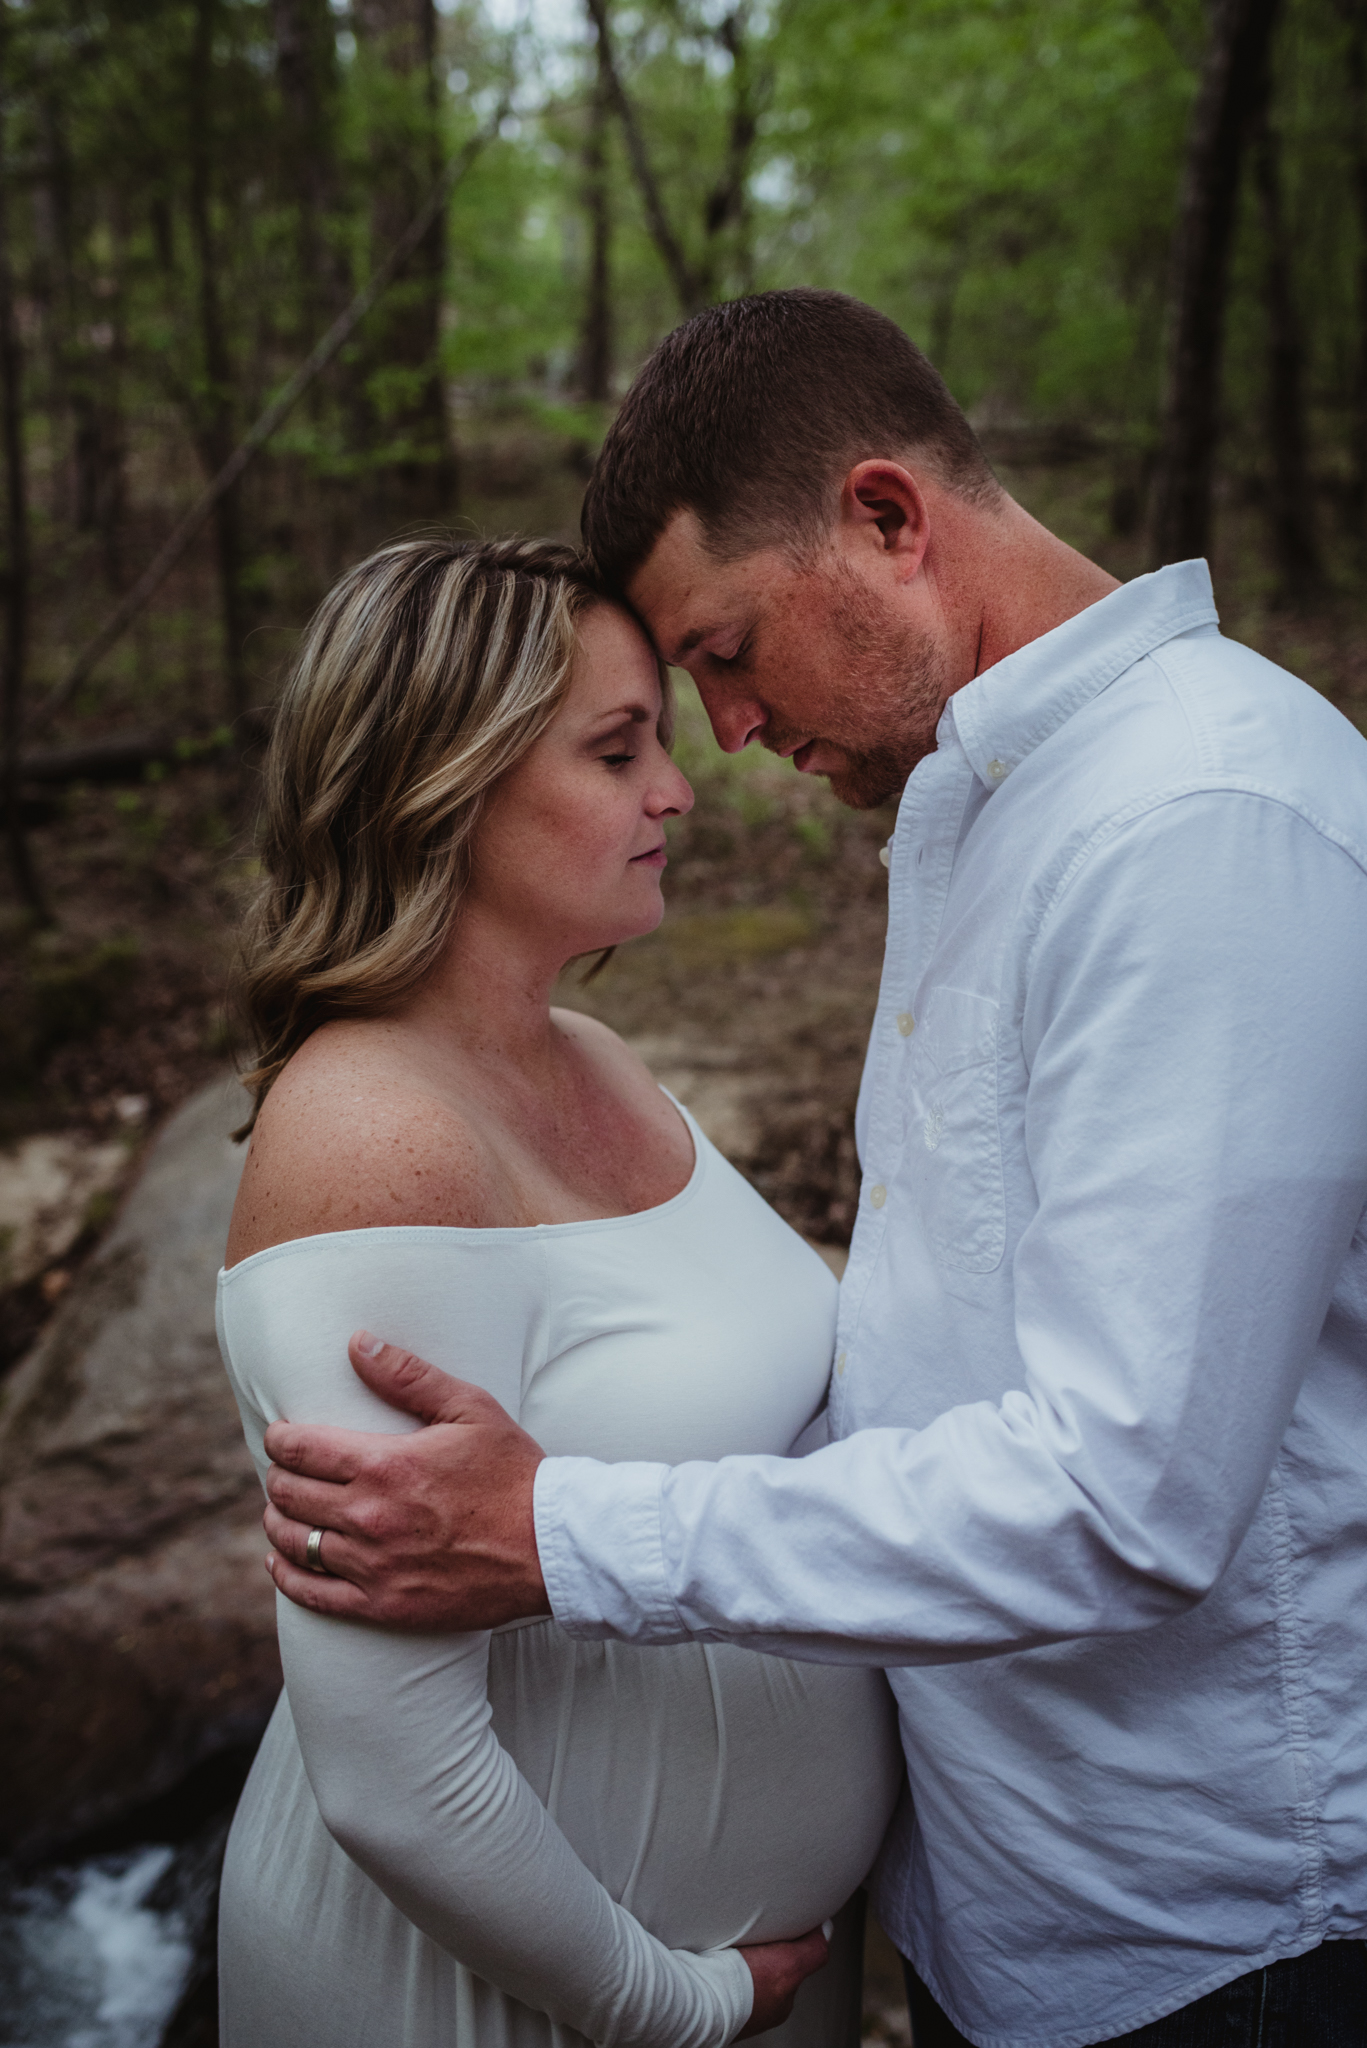 The soon to be parents hold each other close during their maternity shoot with Rose Trail Images at Mill Bridge Nature Park in Rolesville, NC.